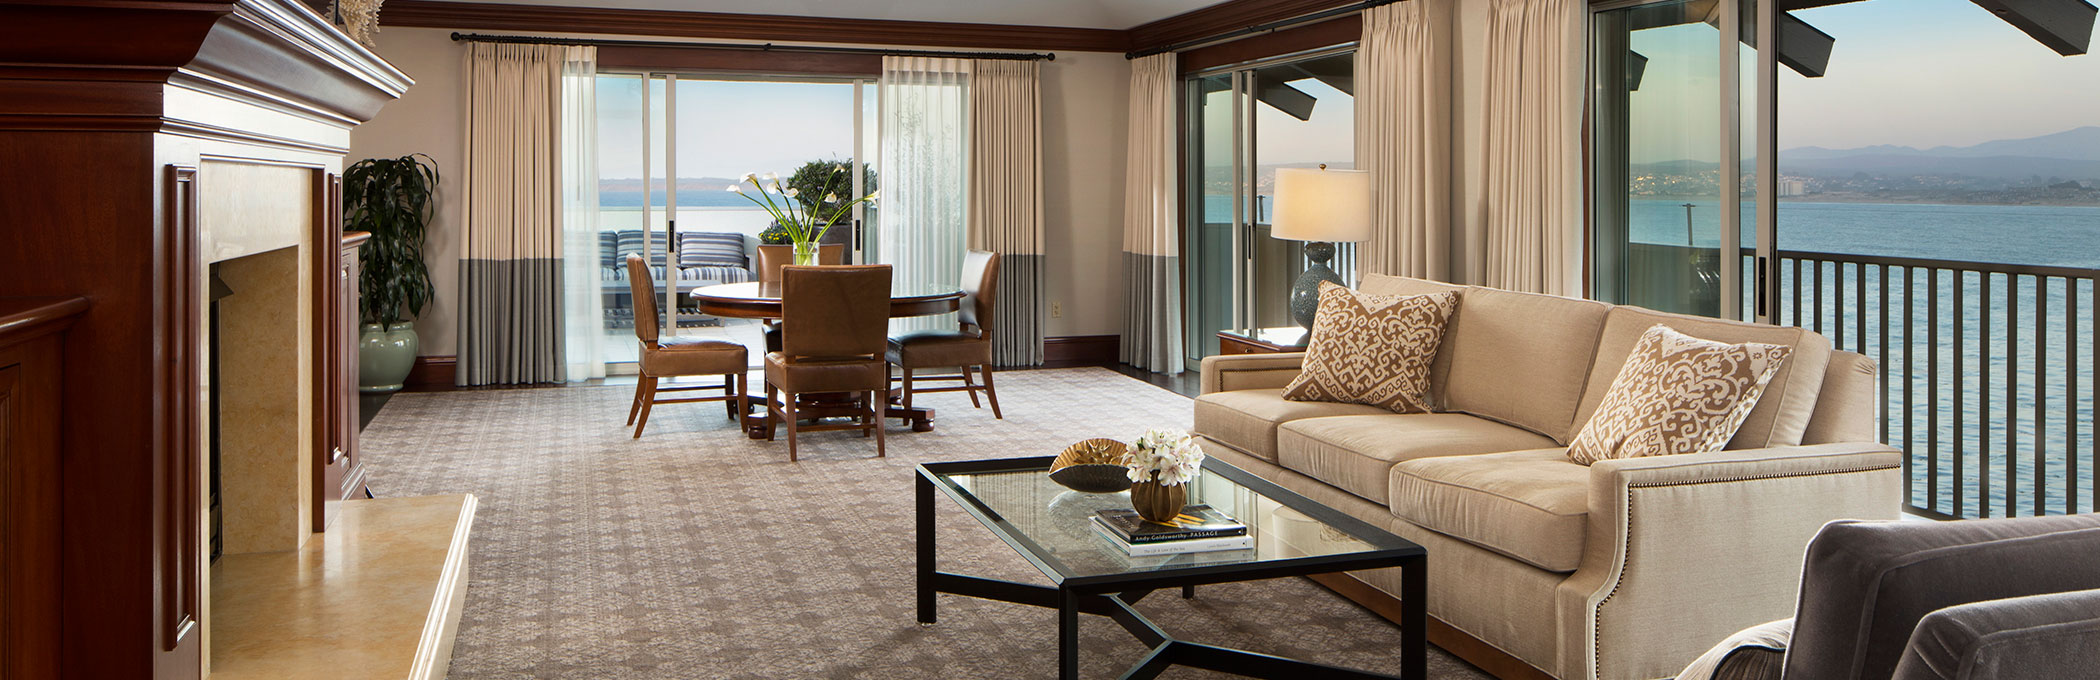 luxury suite with ocean view header monterey